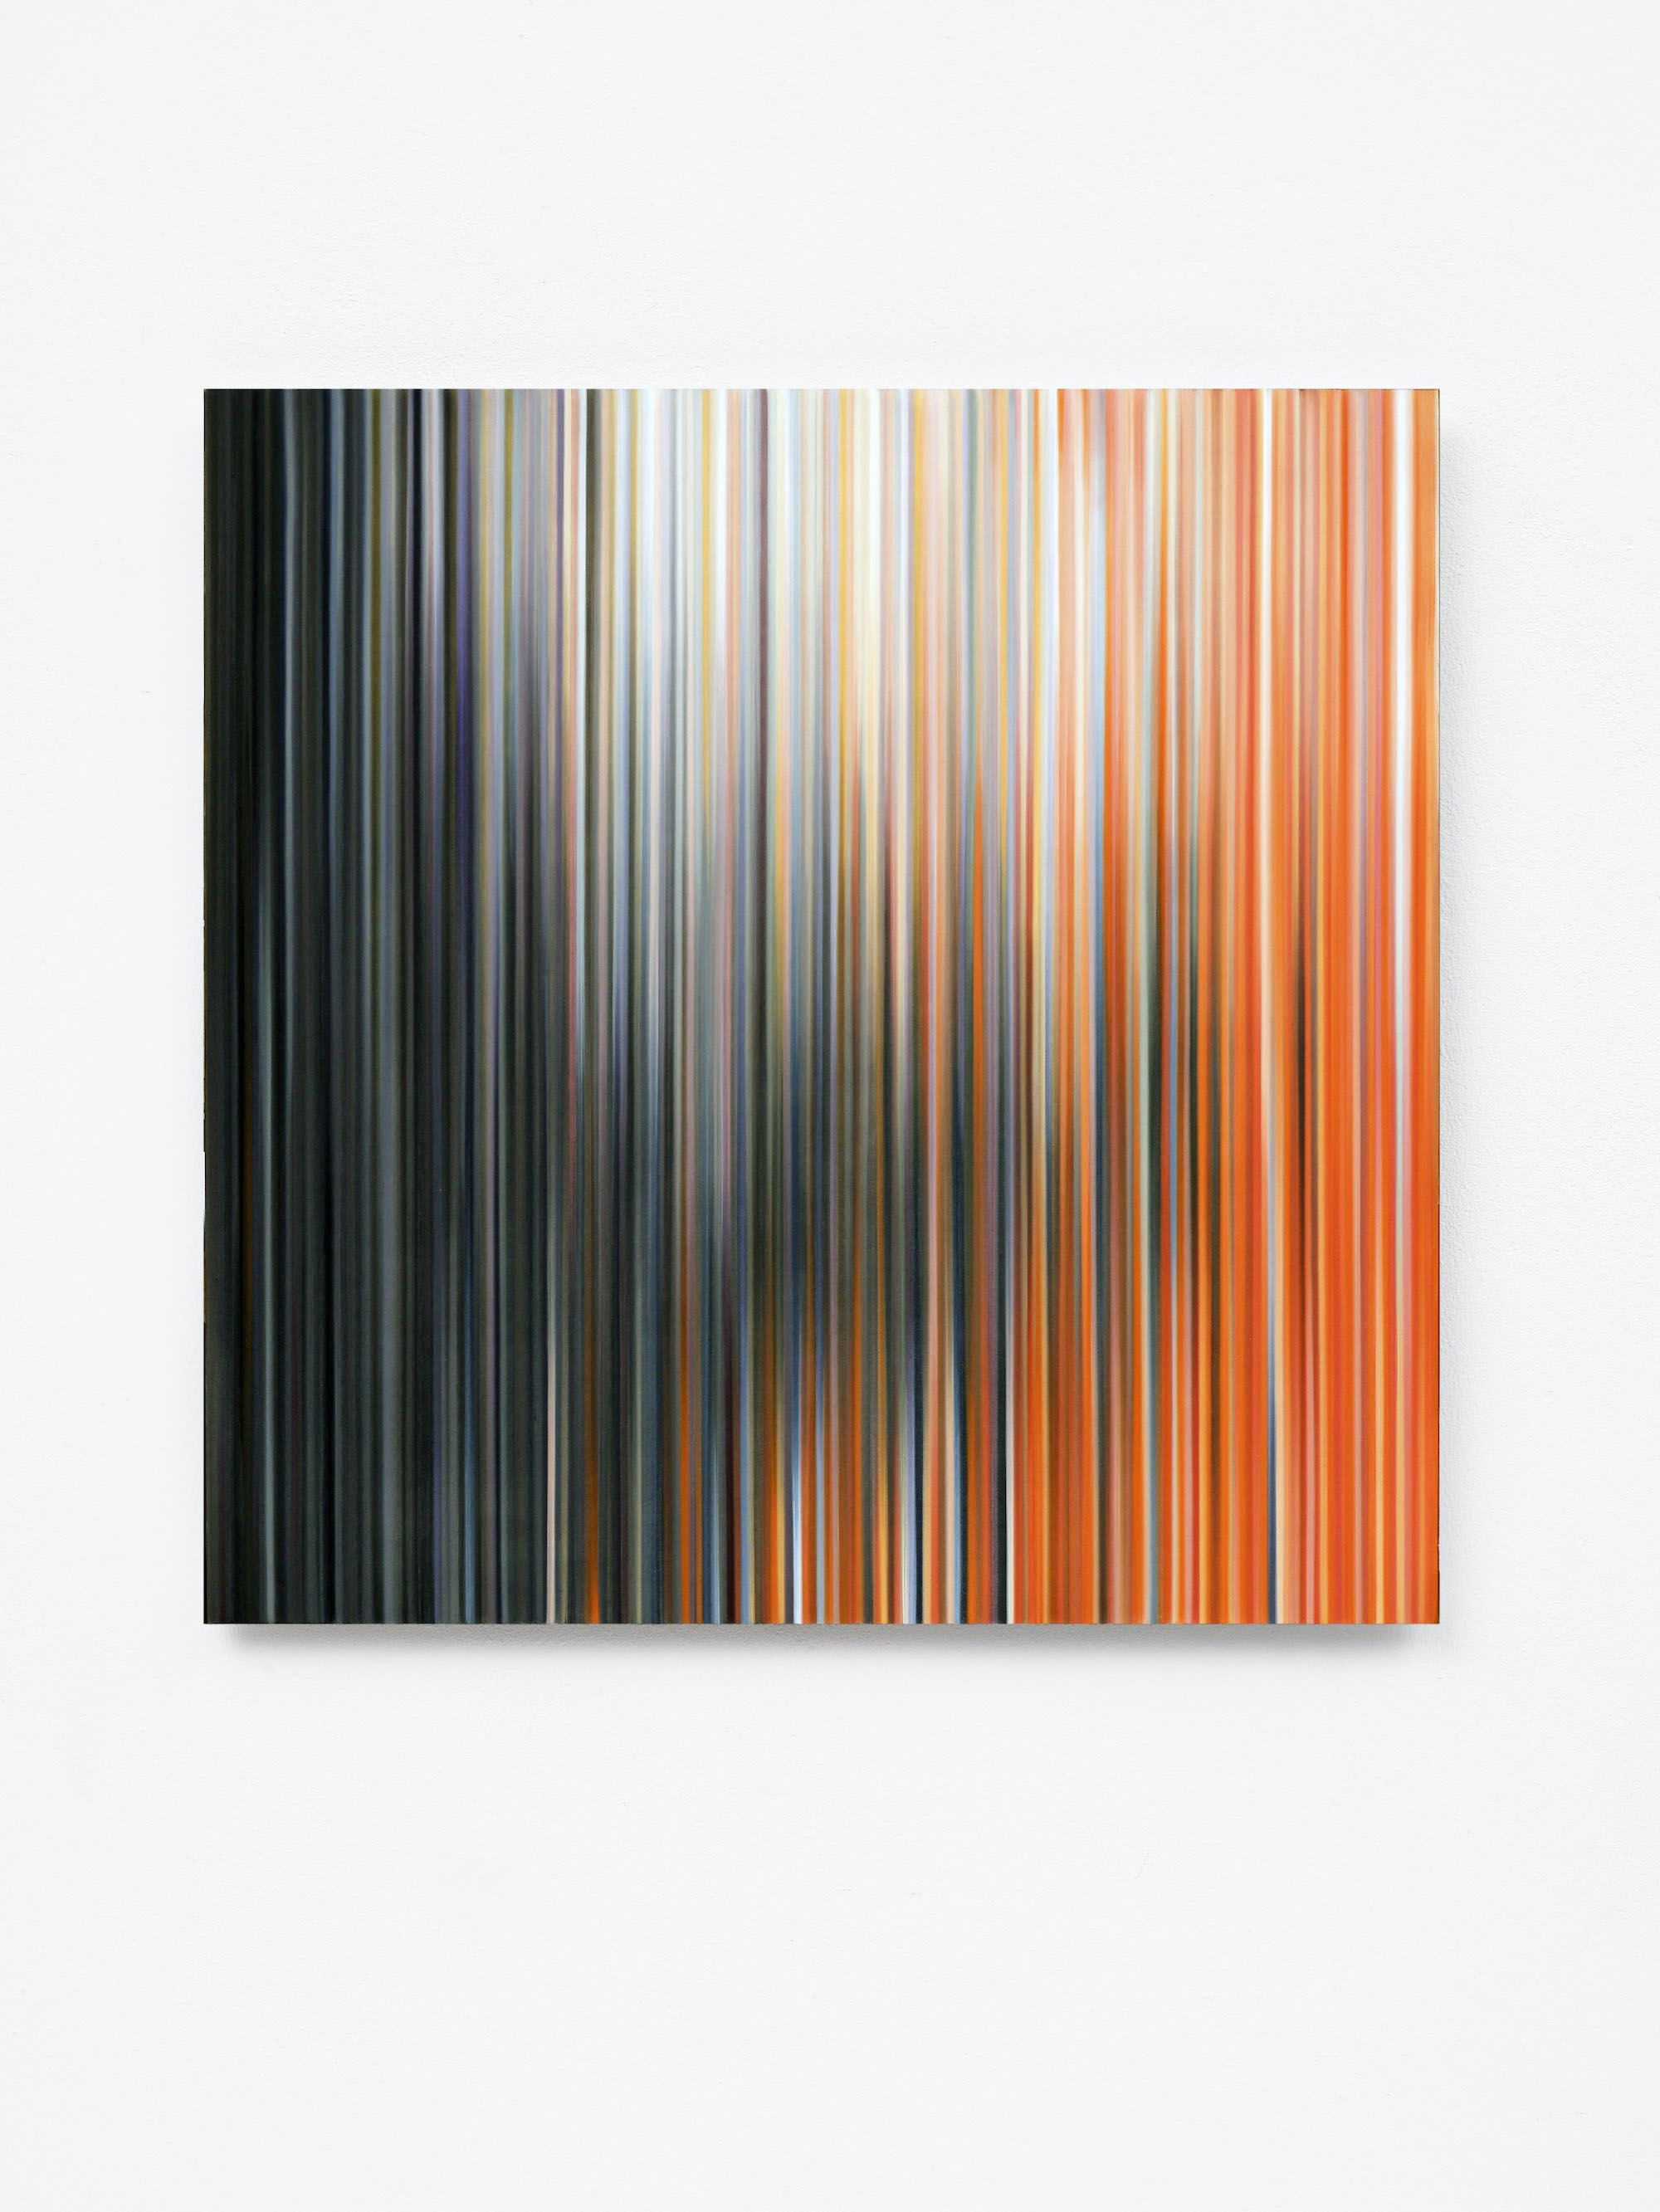 Light'n'Lines No.15 (BlackWhiteOrange),Doris Marten,Peinture contemporaine